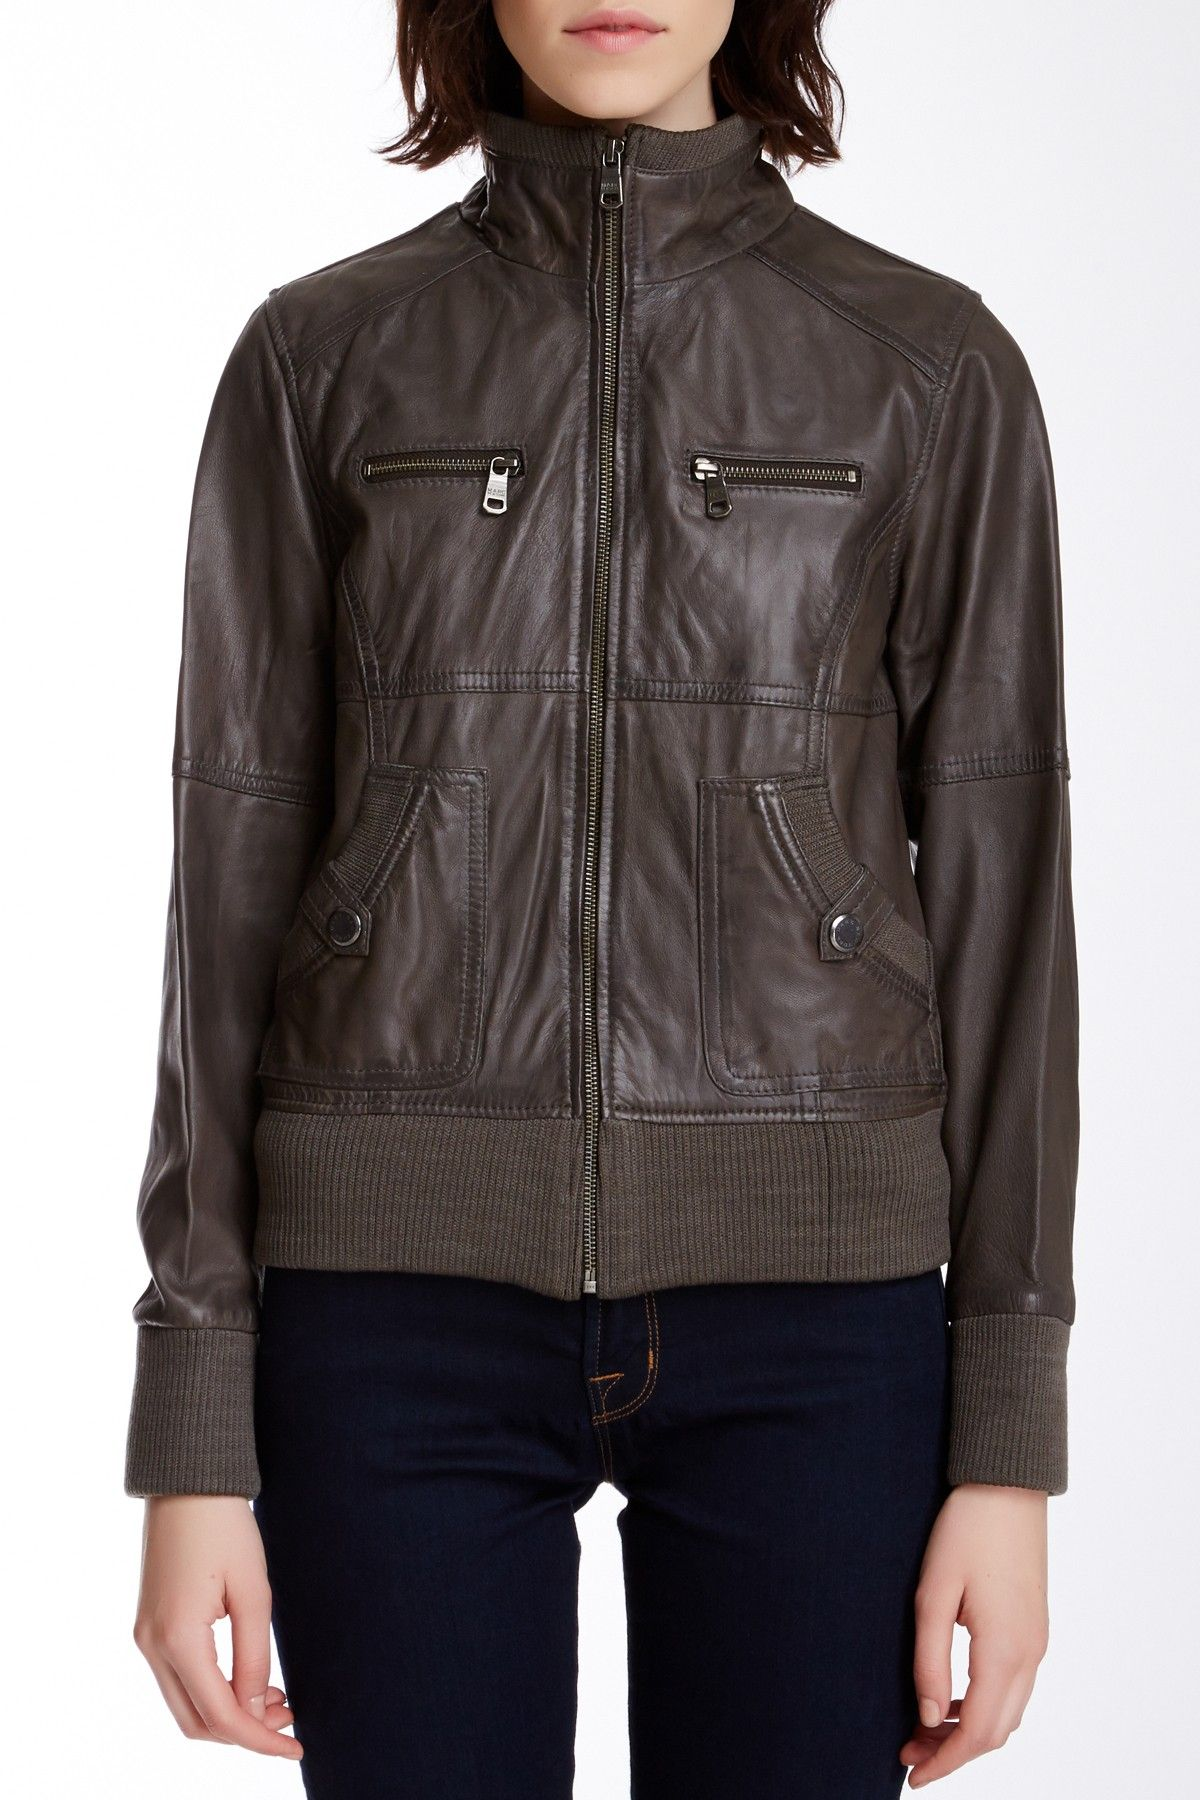 Andrew Marc Scarlett Leather Jacket (With images